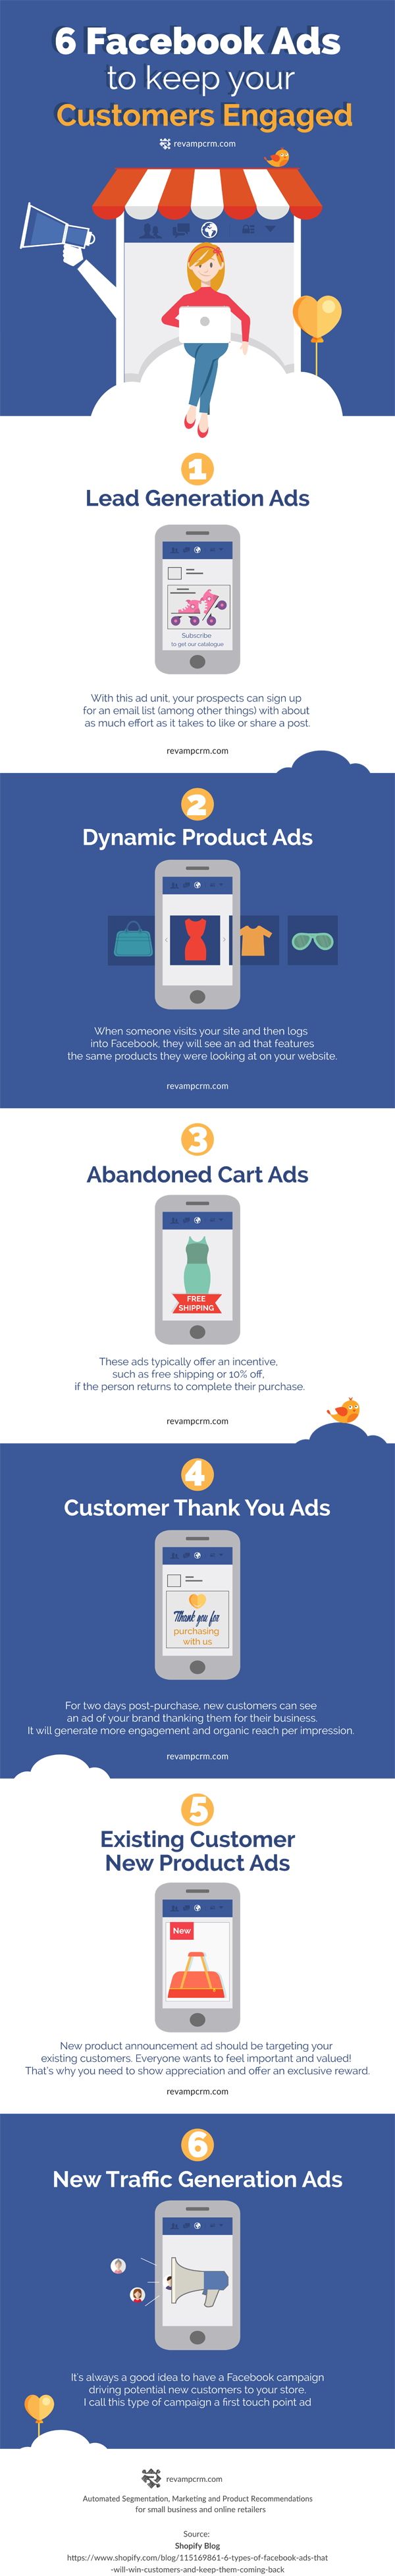 6 Facebook Ads To Keep Your Customer Engaged - #infographic